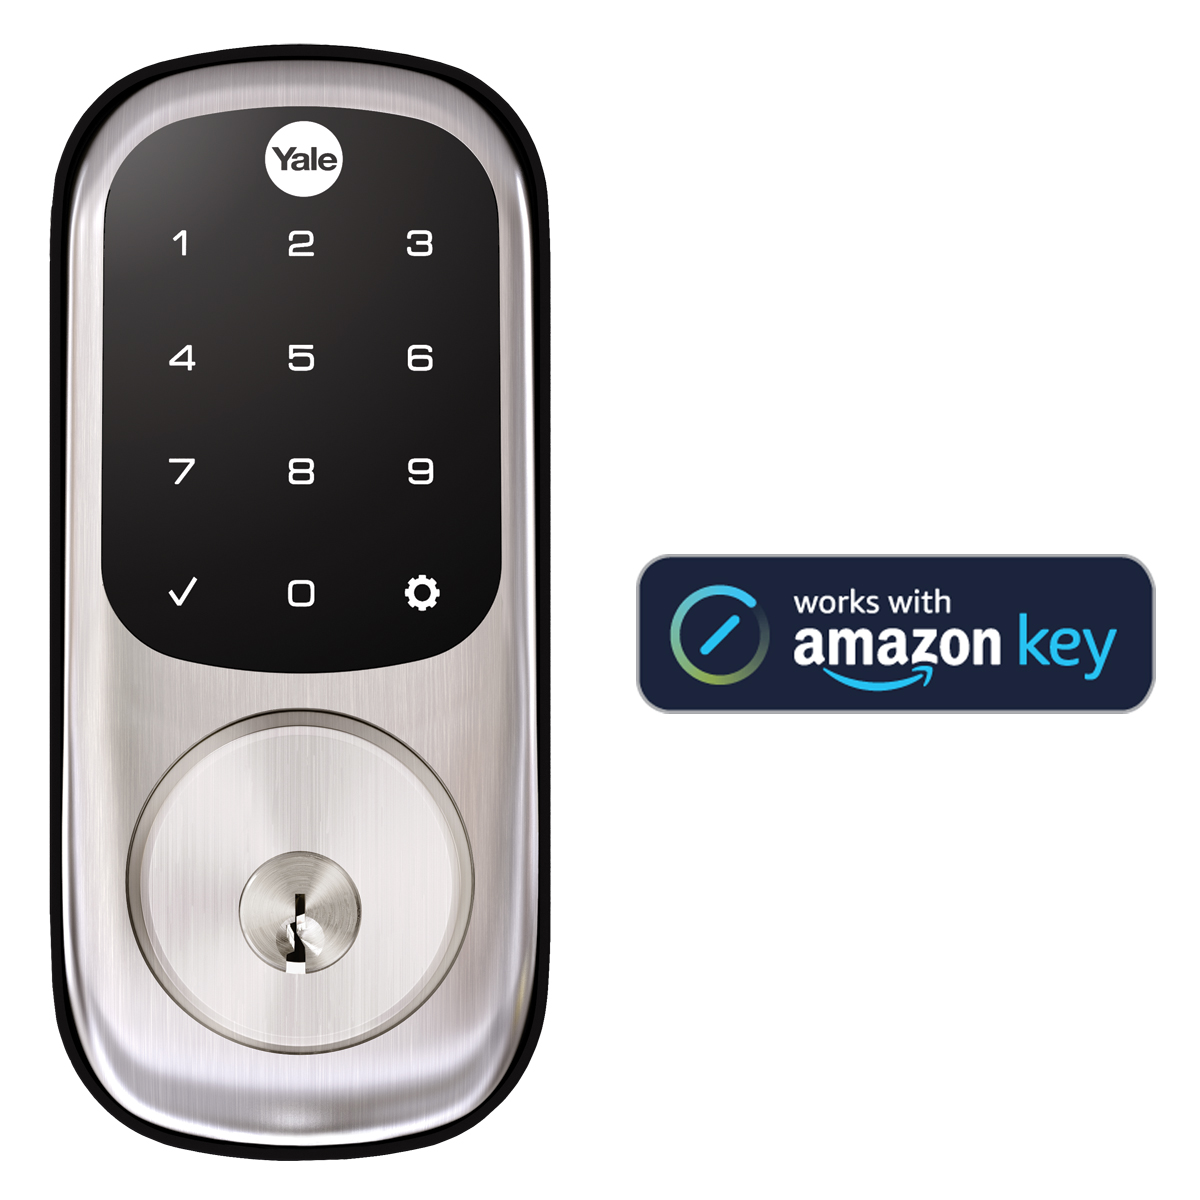 Amazon Key Yale Door Lock. Yale_Amazon_Key_ASSA_ABLOY  sc 1 st  Future Lab - ASSA ABLOY & Podcast: Yale smart lock solution for Amazon Key | Future Lab - ASSA ...